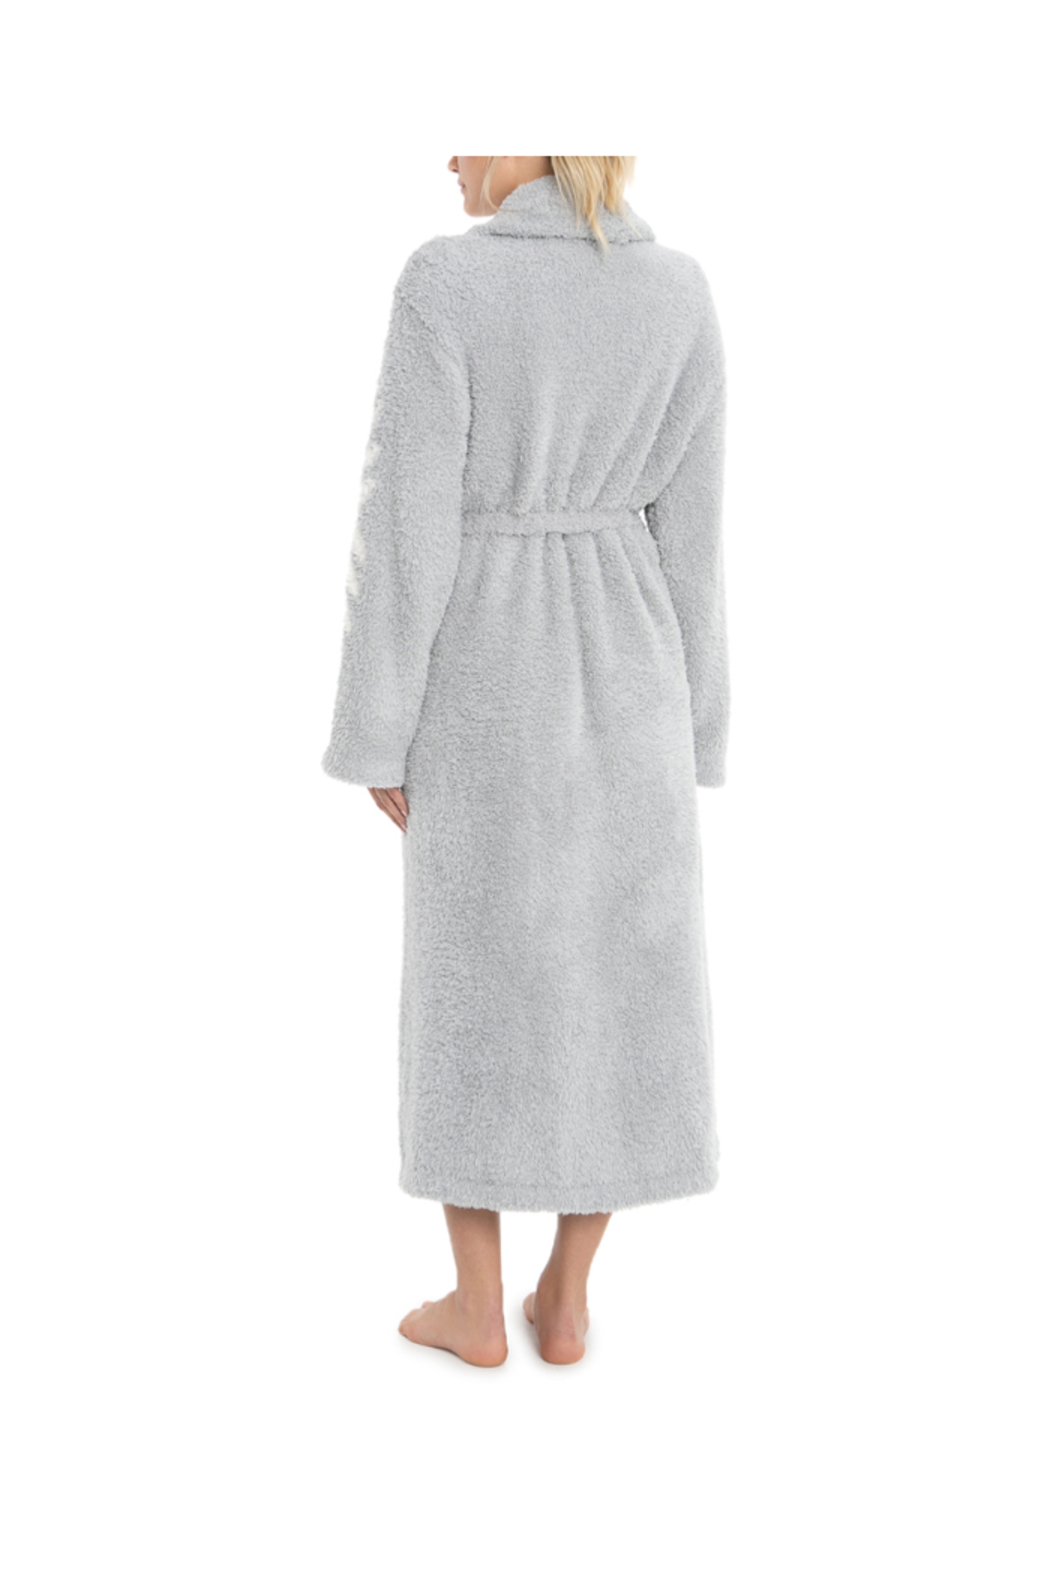 The Birds Nest CC INSPIRATION ROBE-OCEAN(BELIEVE IN DREAMS) - Front Full Image